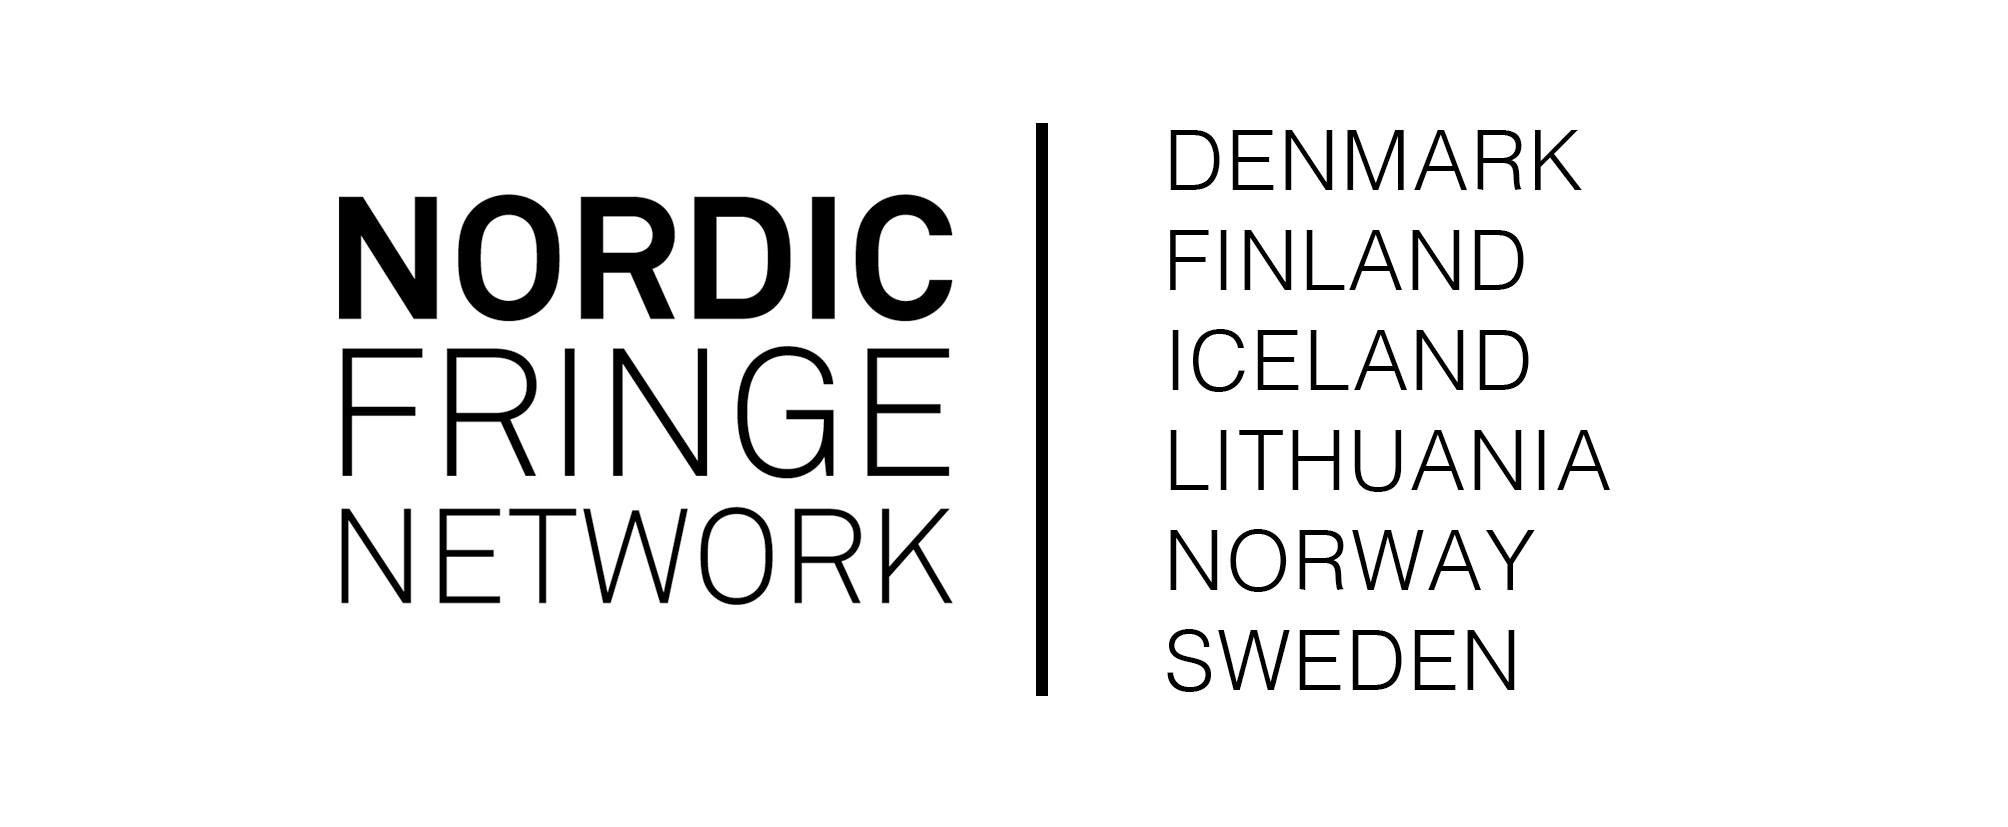 Nordic fringe network - What is the Nordic Fringe Network (NFN)? Who is a part of it? Find out more about RVK Fringe partnering festivals in other Nordic countries and tour your show to different festivals (or just go check them out for fun).